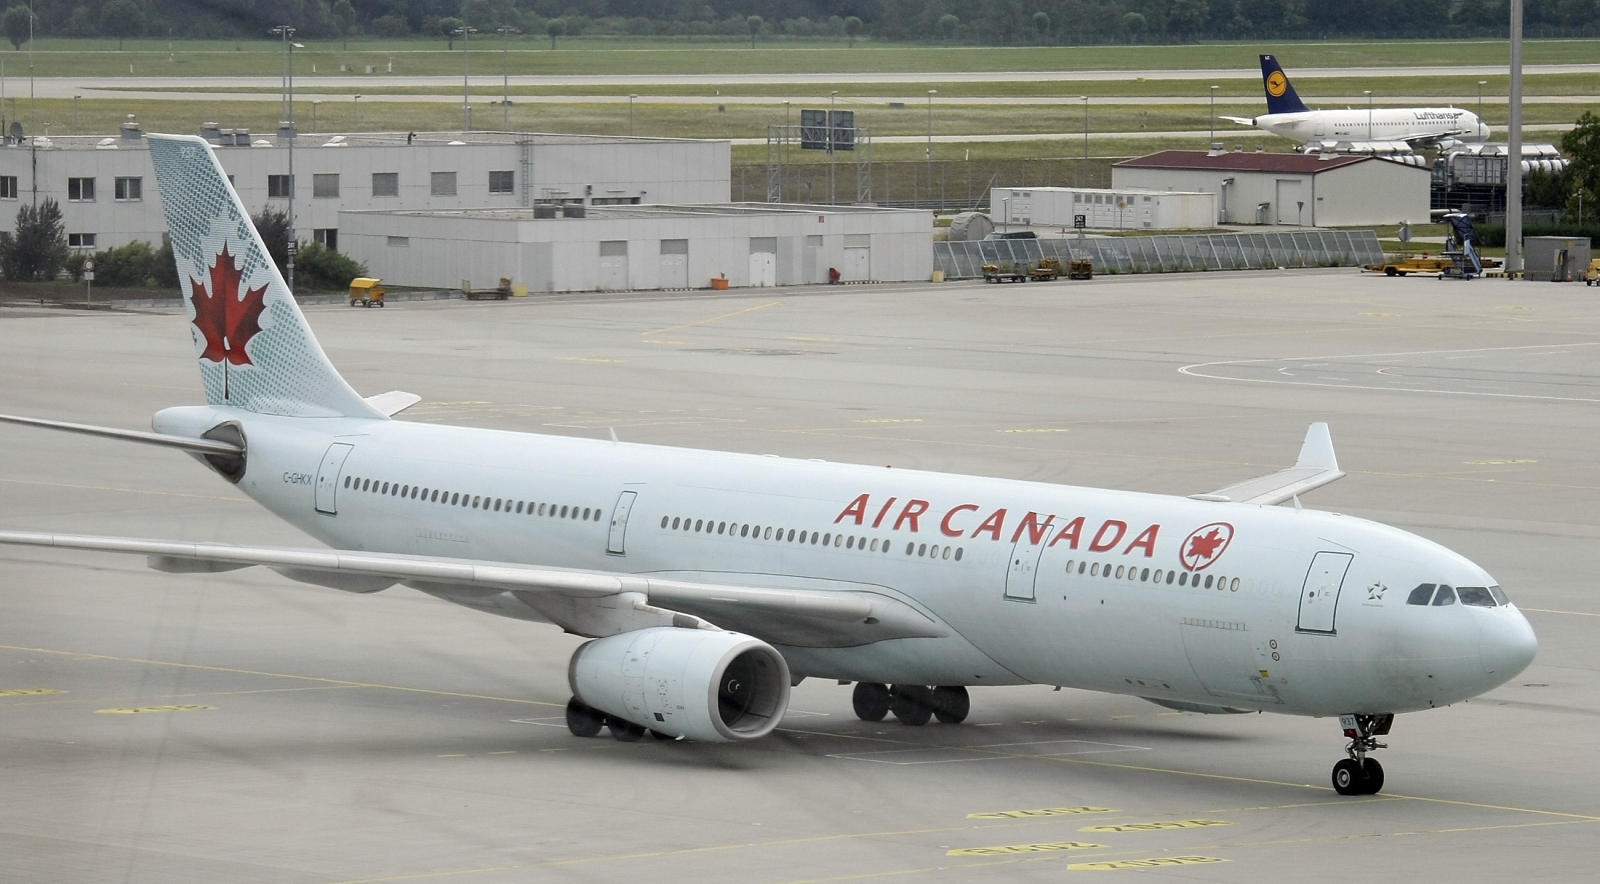 Air Canada passenger plane crash landing